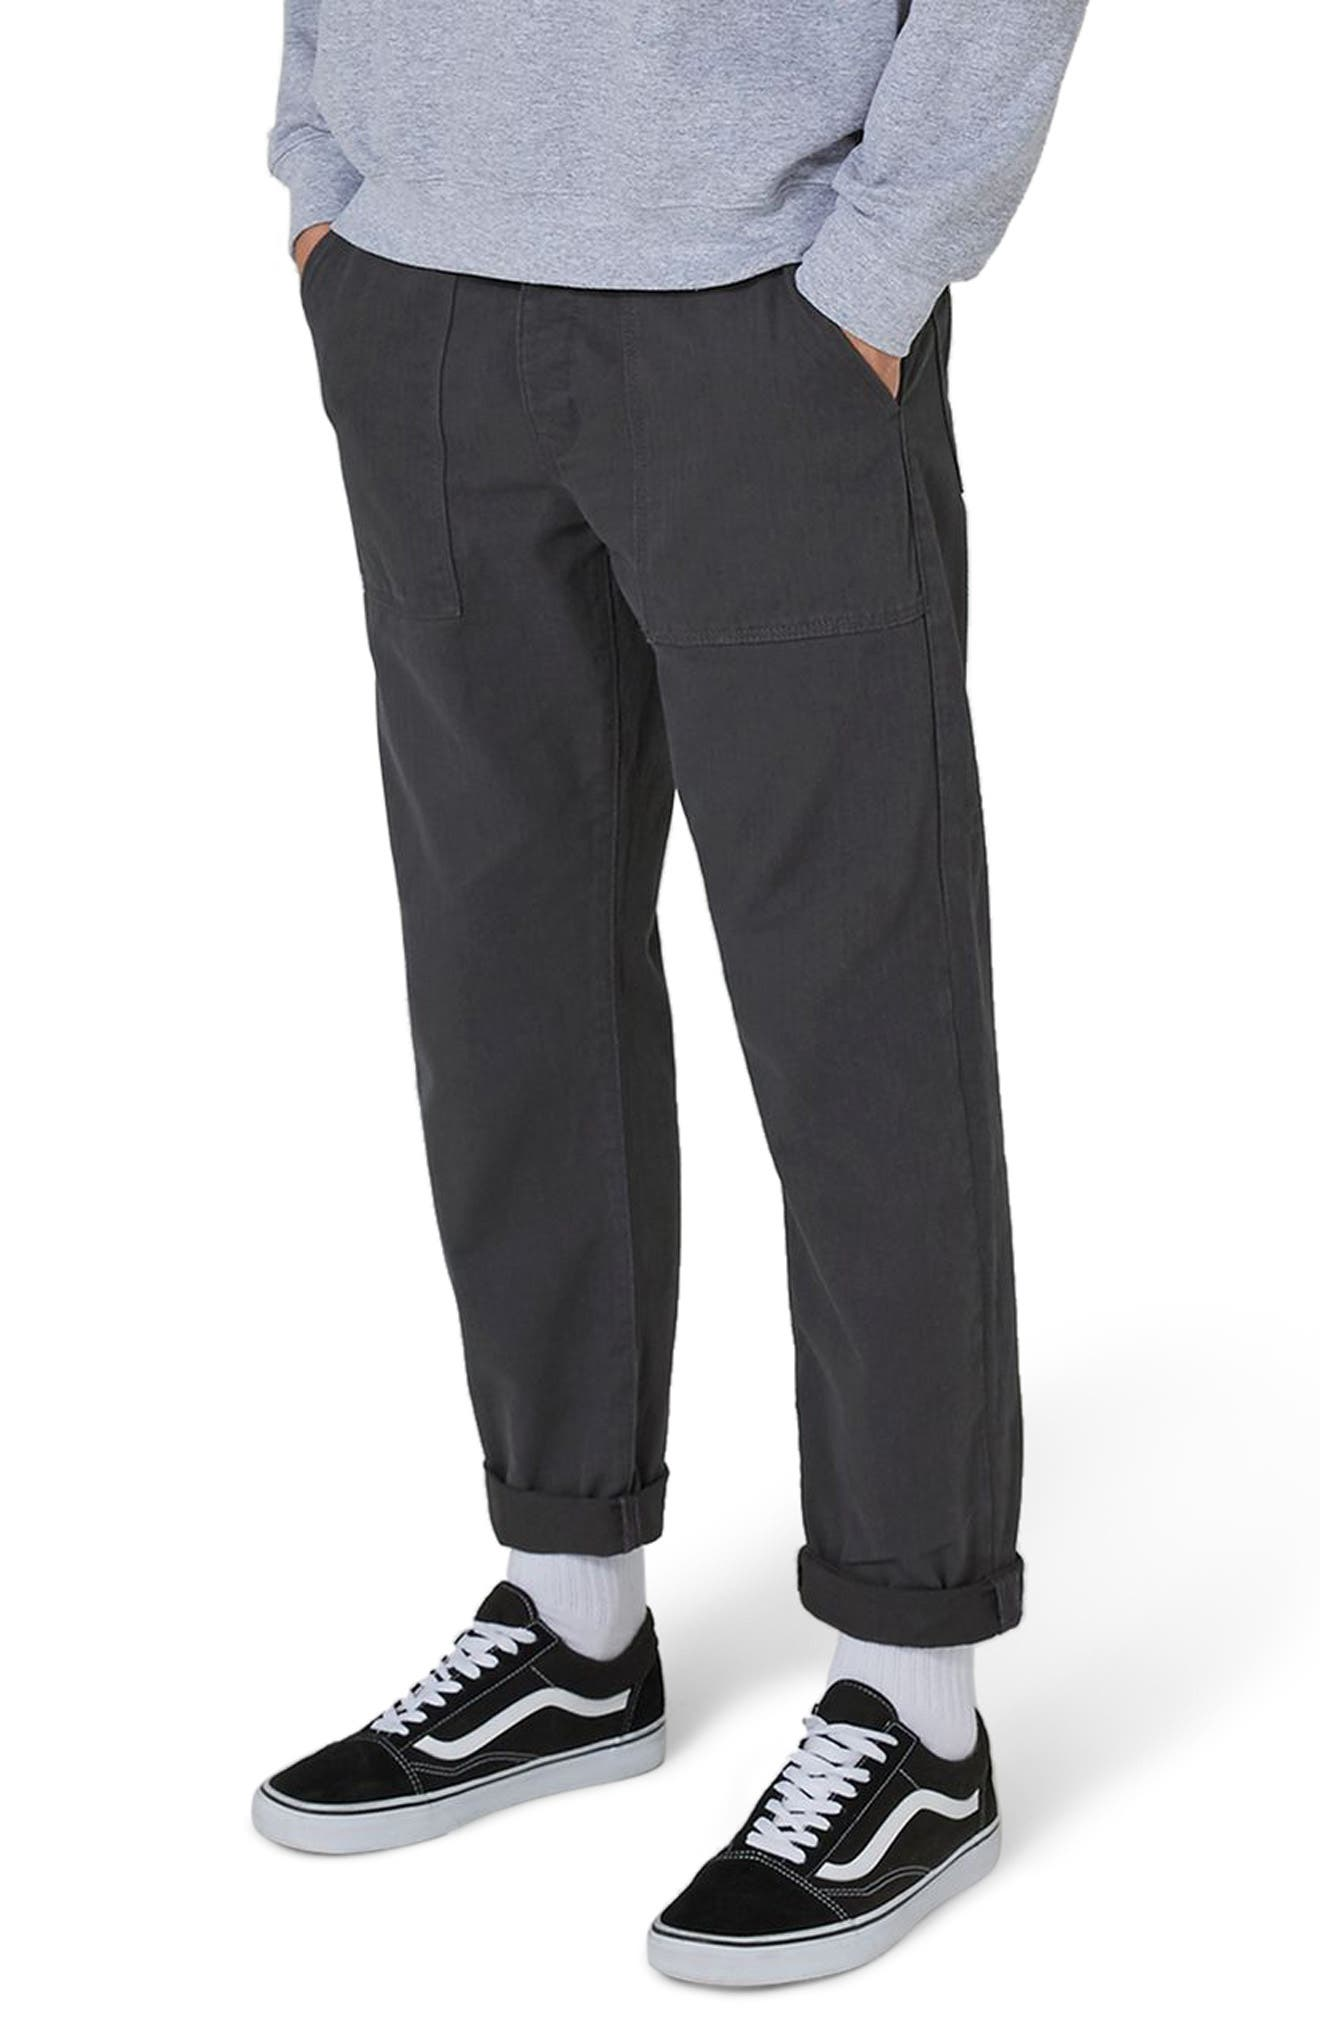 Original Fit Herringbone Trousers,                             Main thumbnail 1, color,                             420